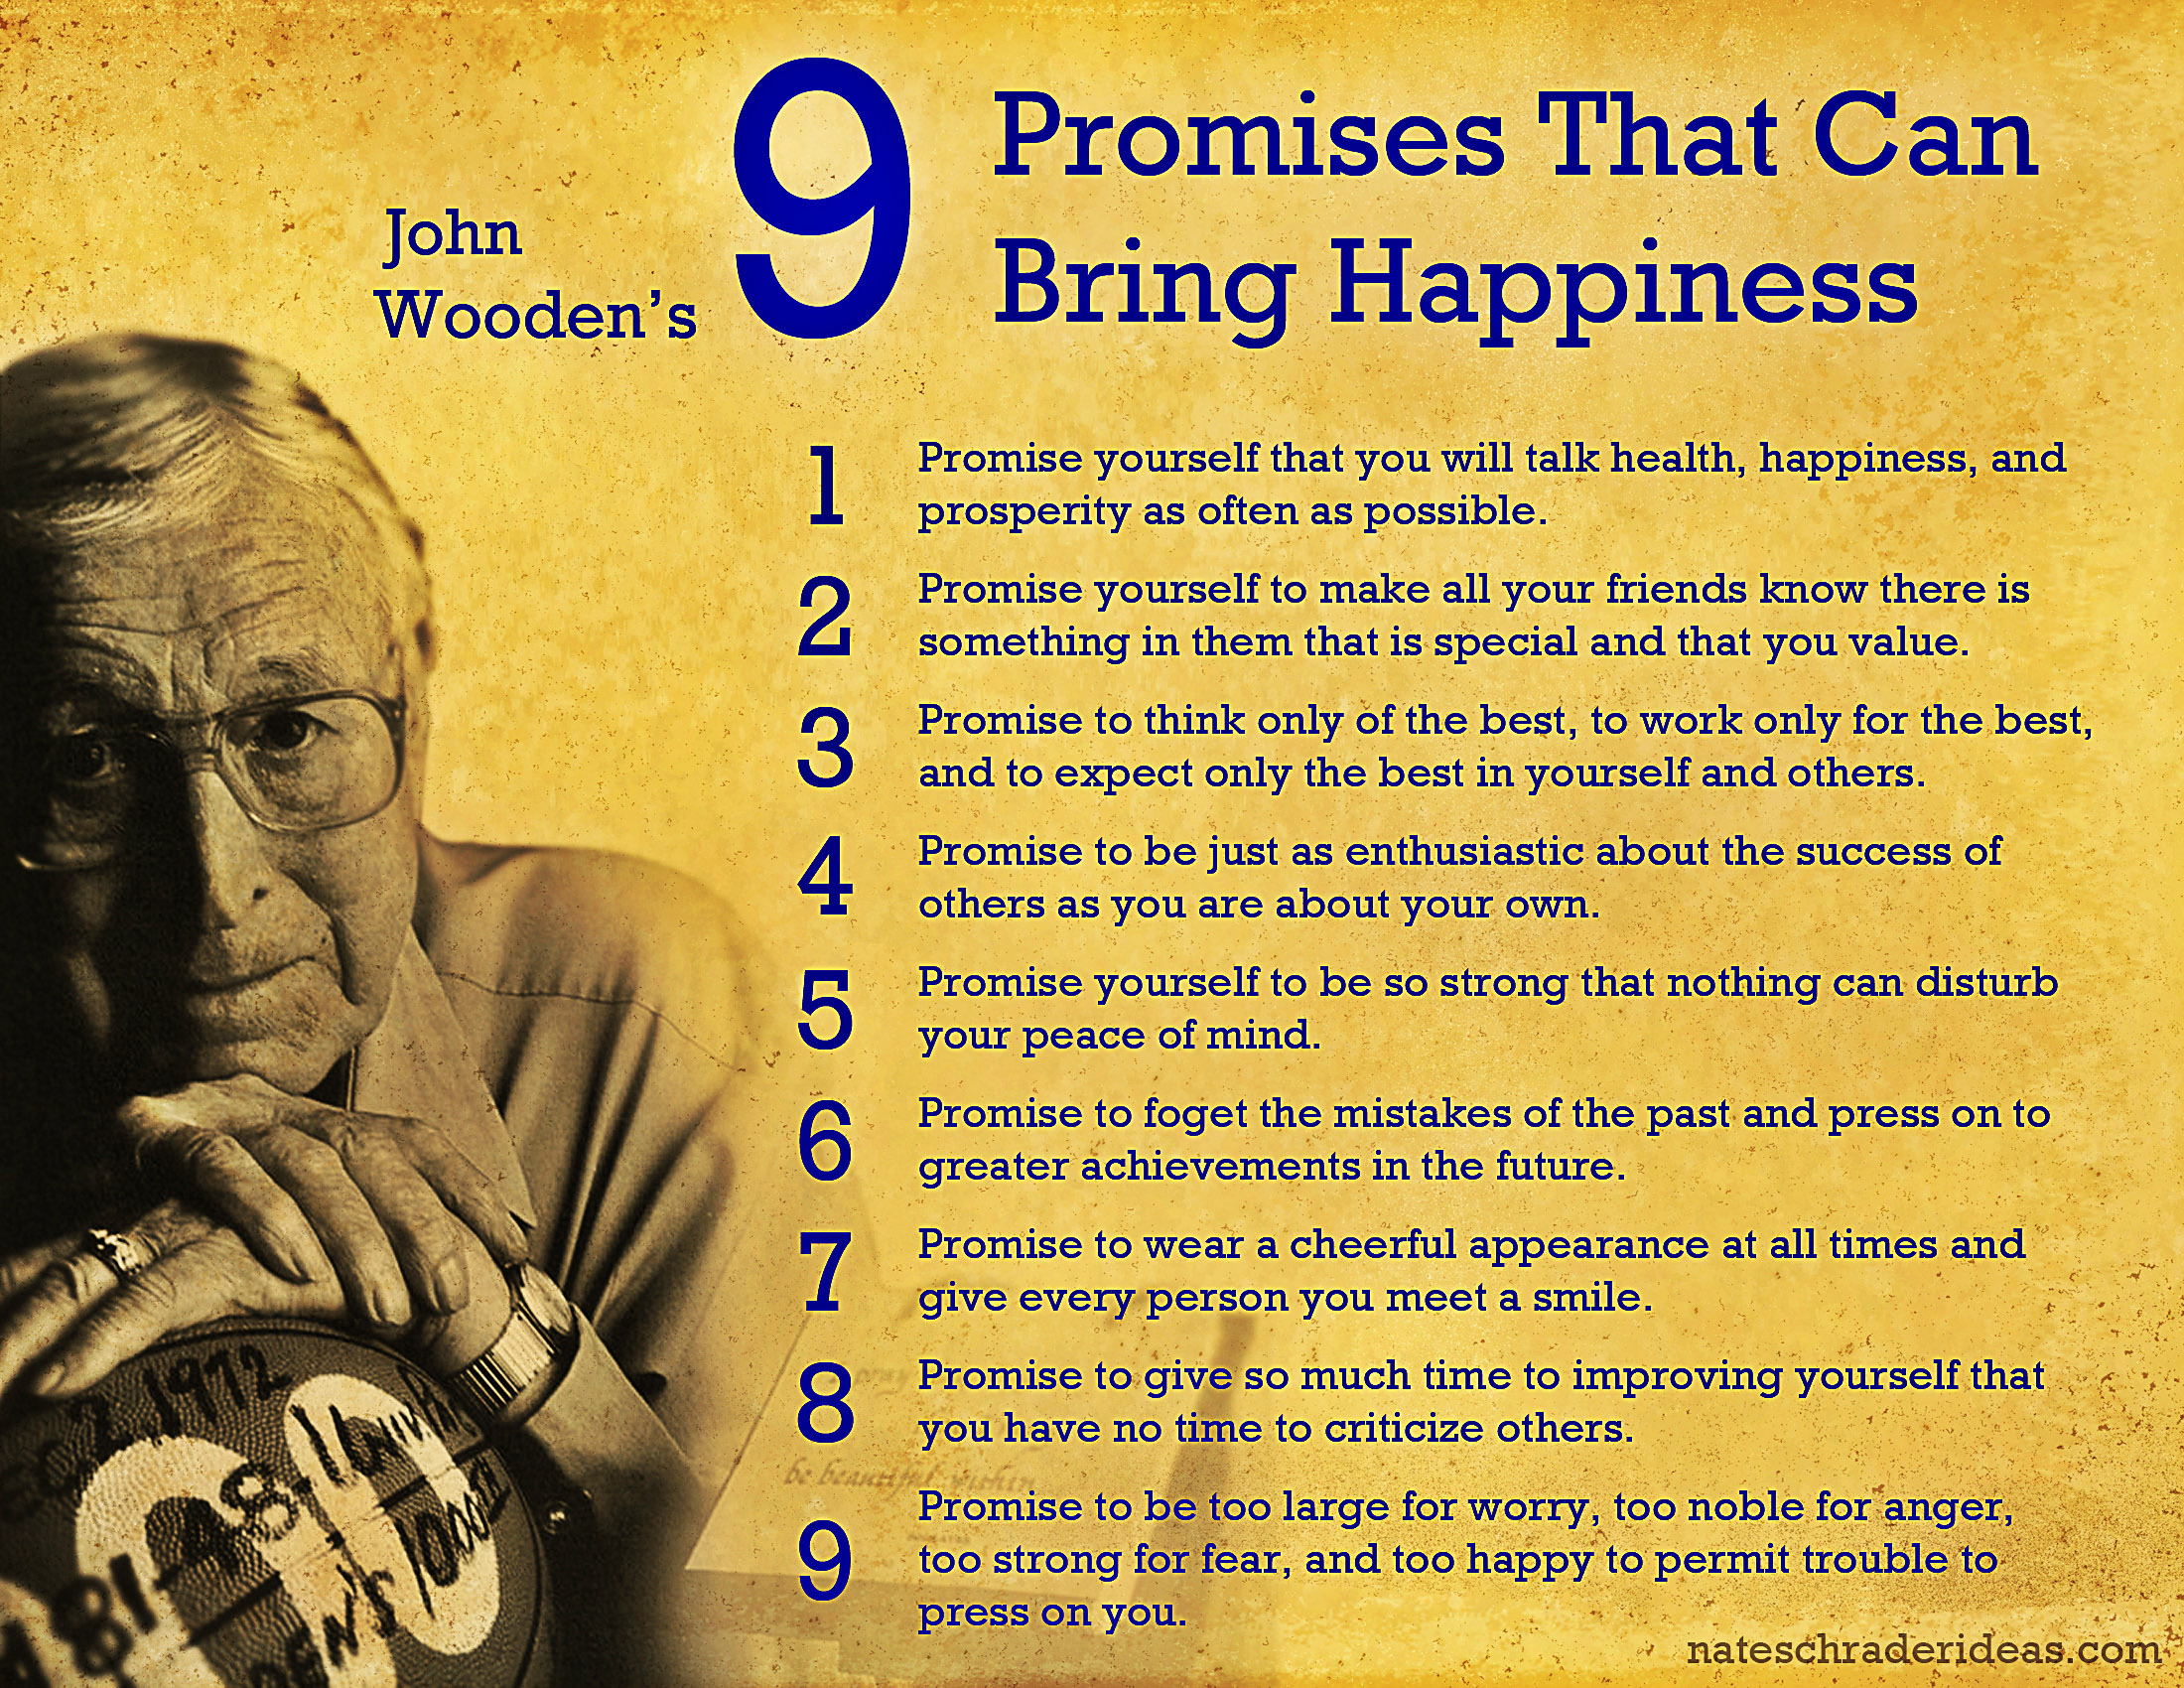 graphic regarding John Wooden Pyramid of Success Printable called John Woodens 9 Statements toward Joy NATE SCHRADER